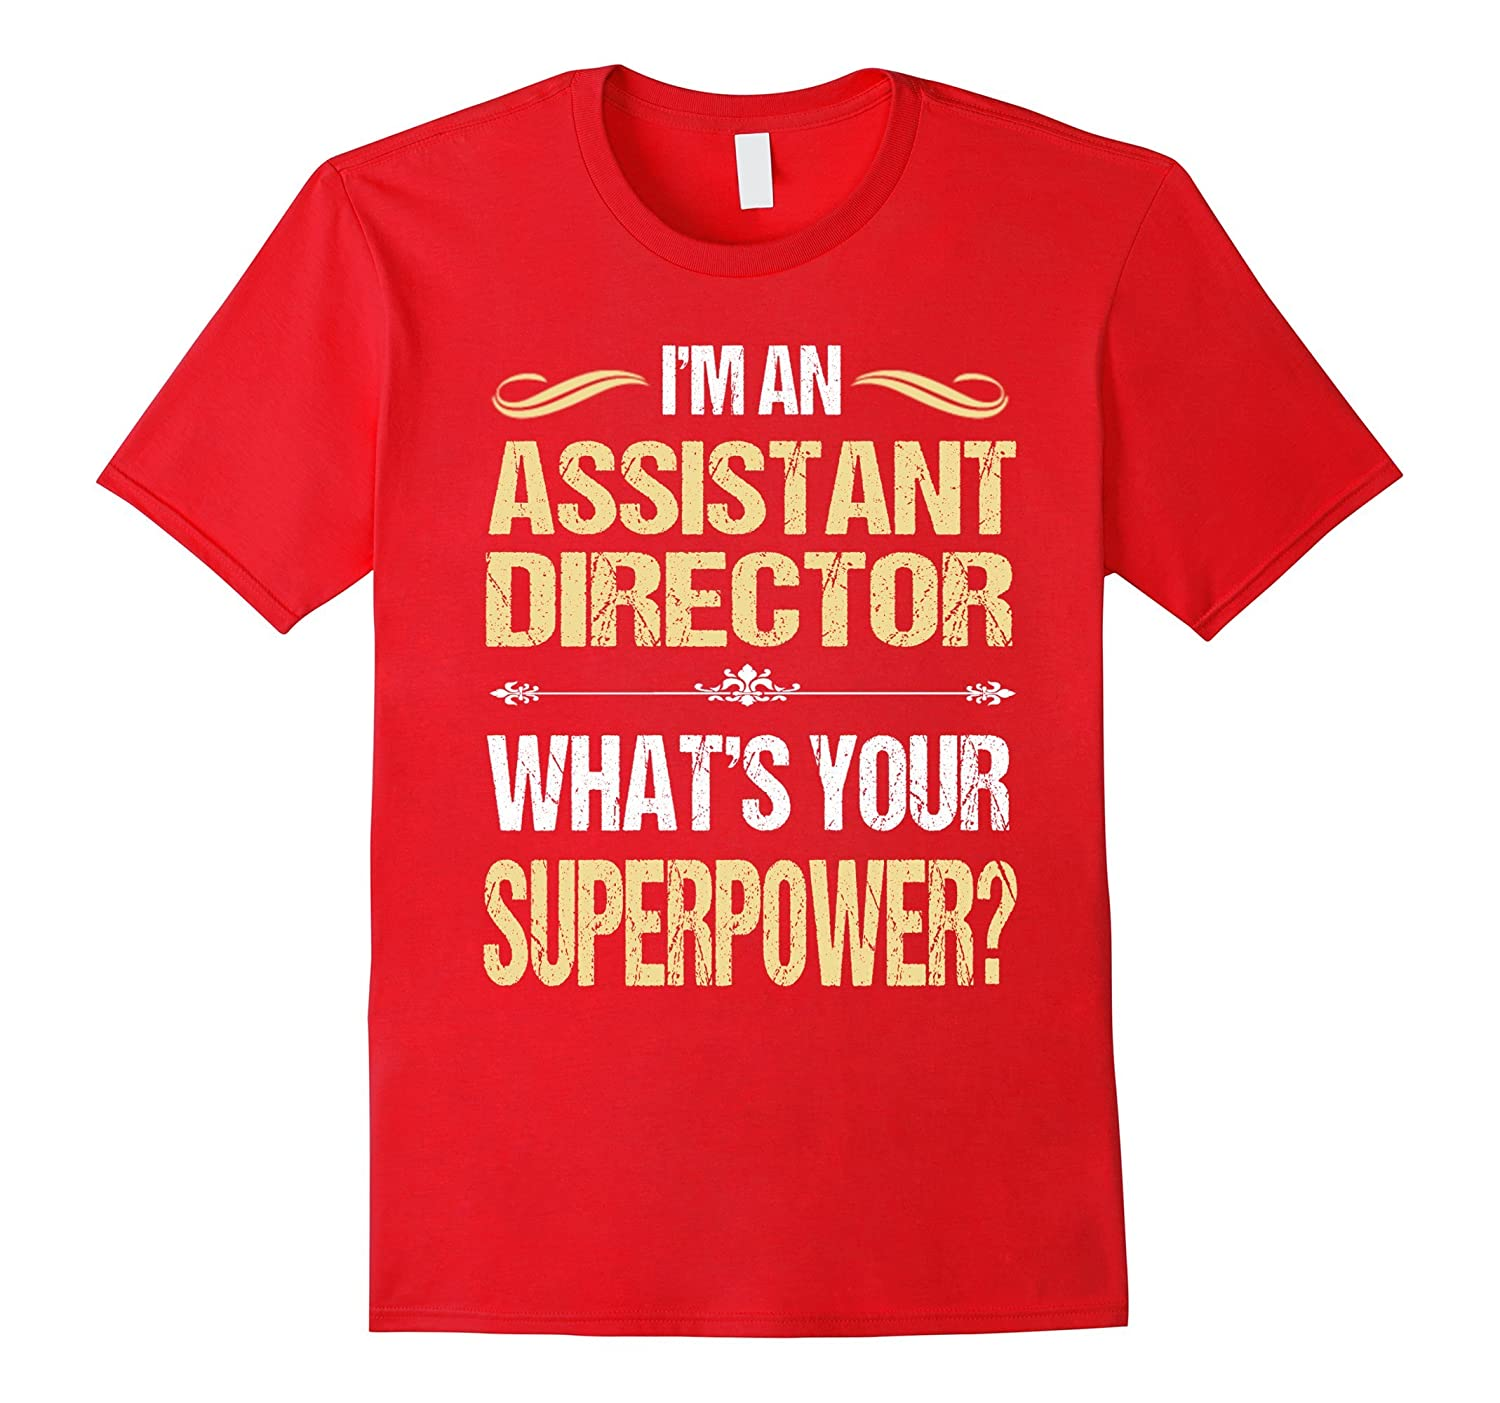 ASSISTANT DIRECTOR - r Superpower T-Shirts-Vaci